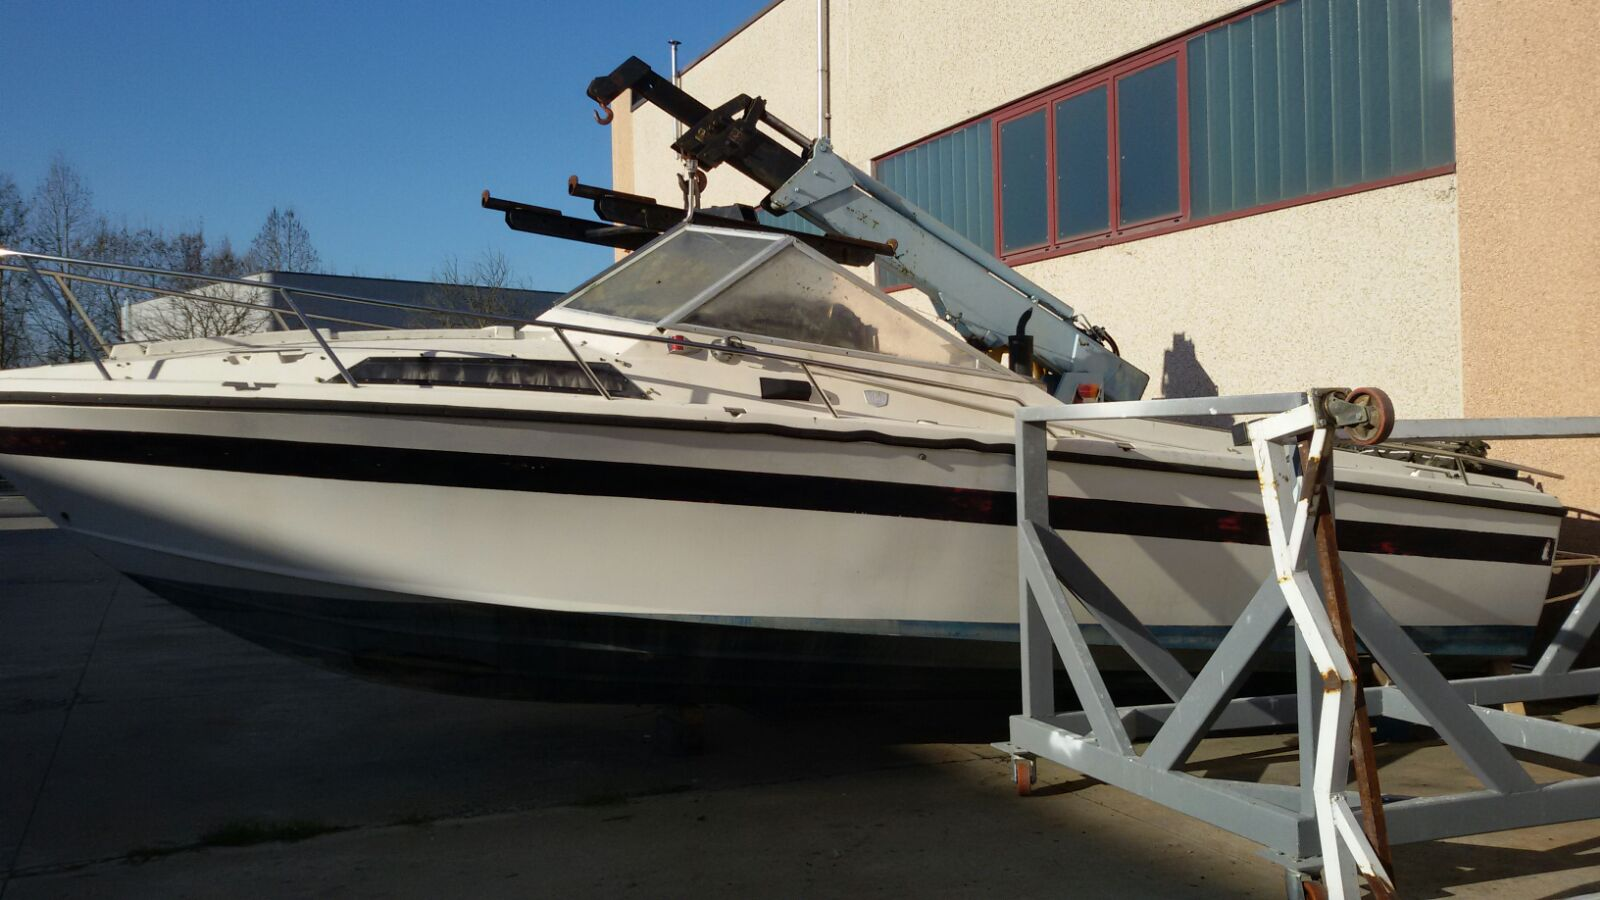 Officina Nautica Marras Concessionario Evinrude